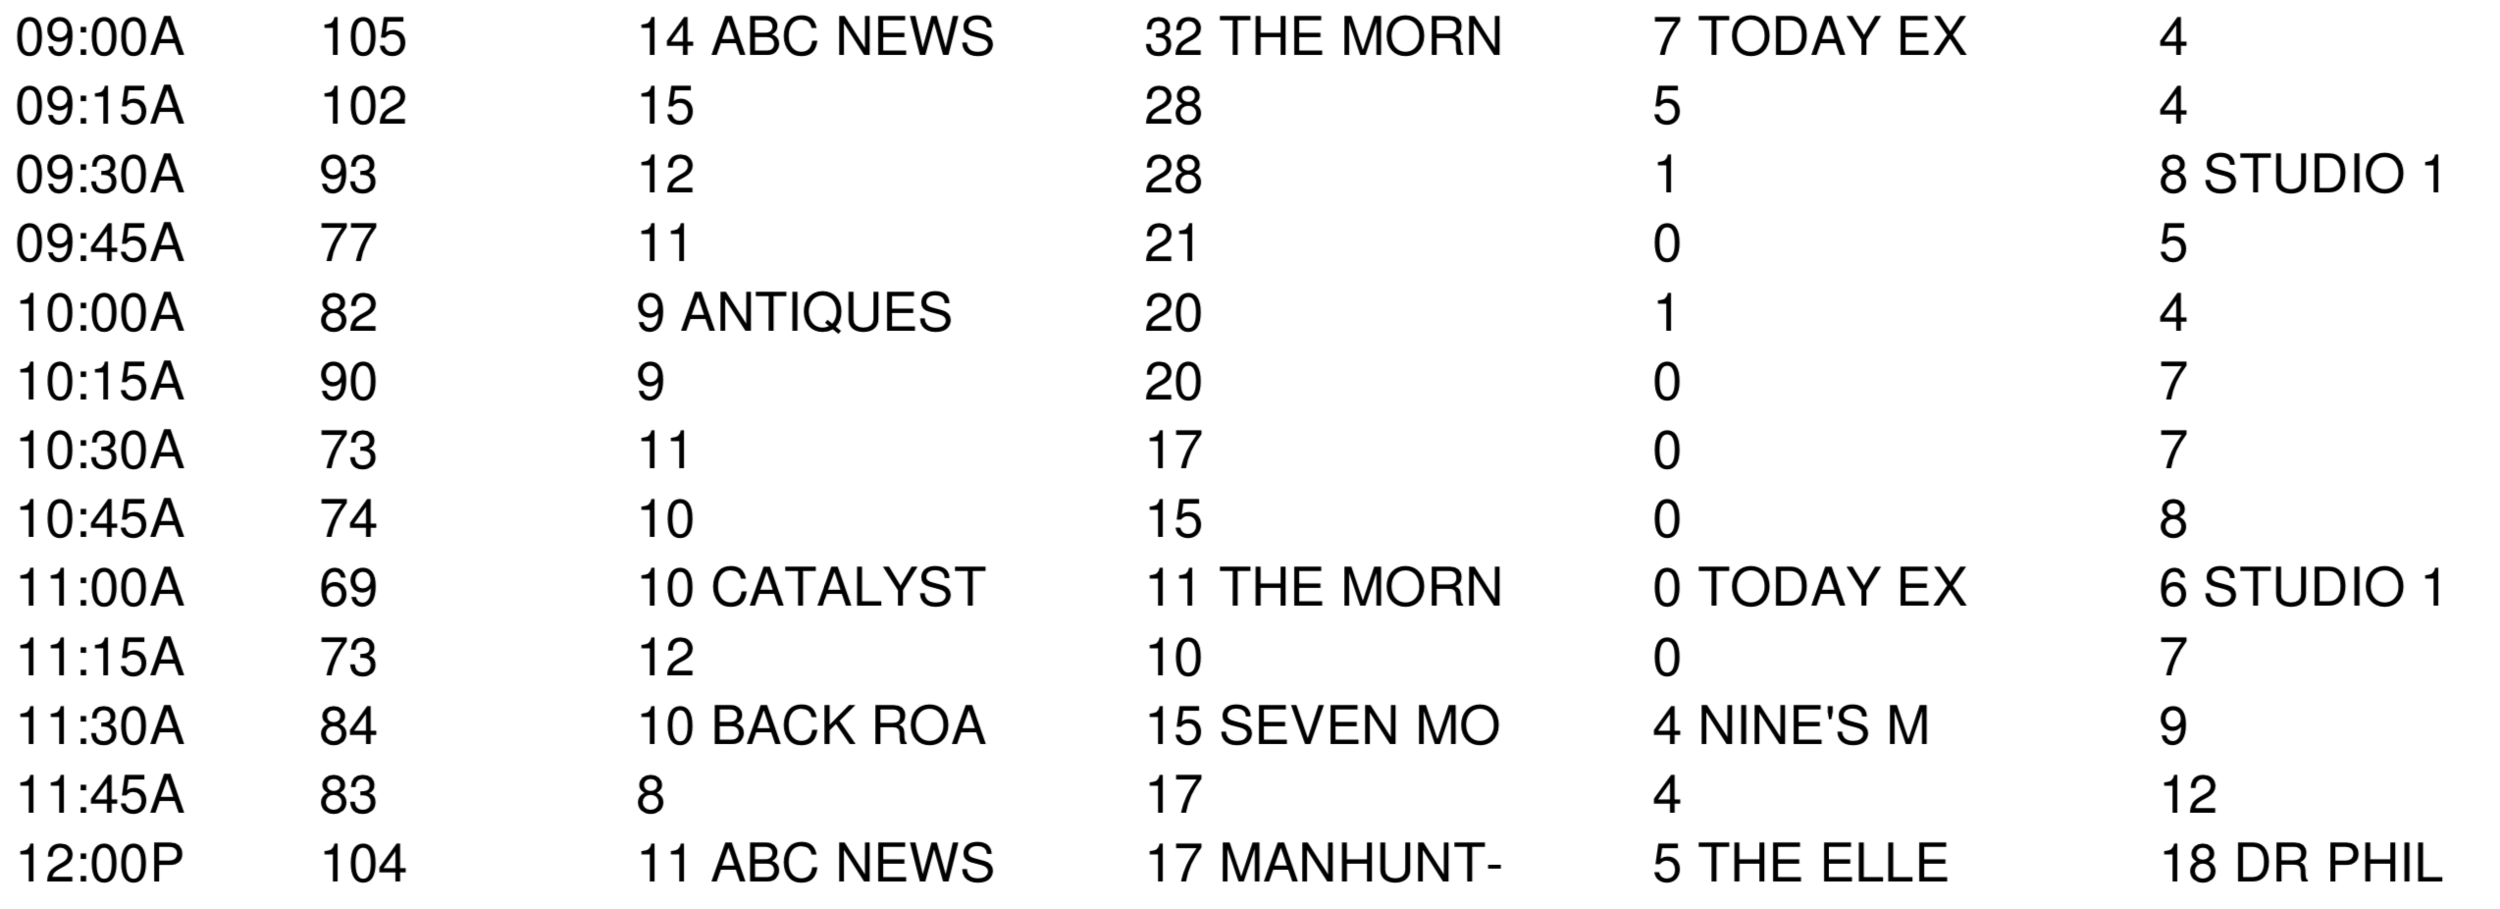 The 15 minute breakdown for THE MORNING SHOW and TODAY EXTRA in Perth on Tuesday 2 April 2019 (numbers are in '000s)